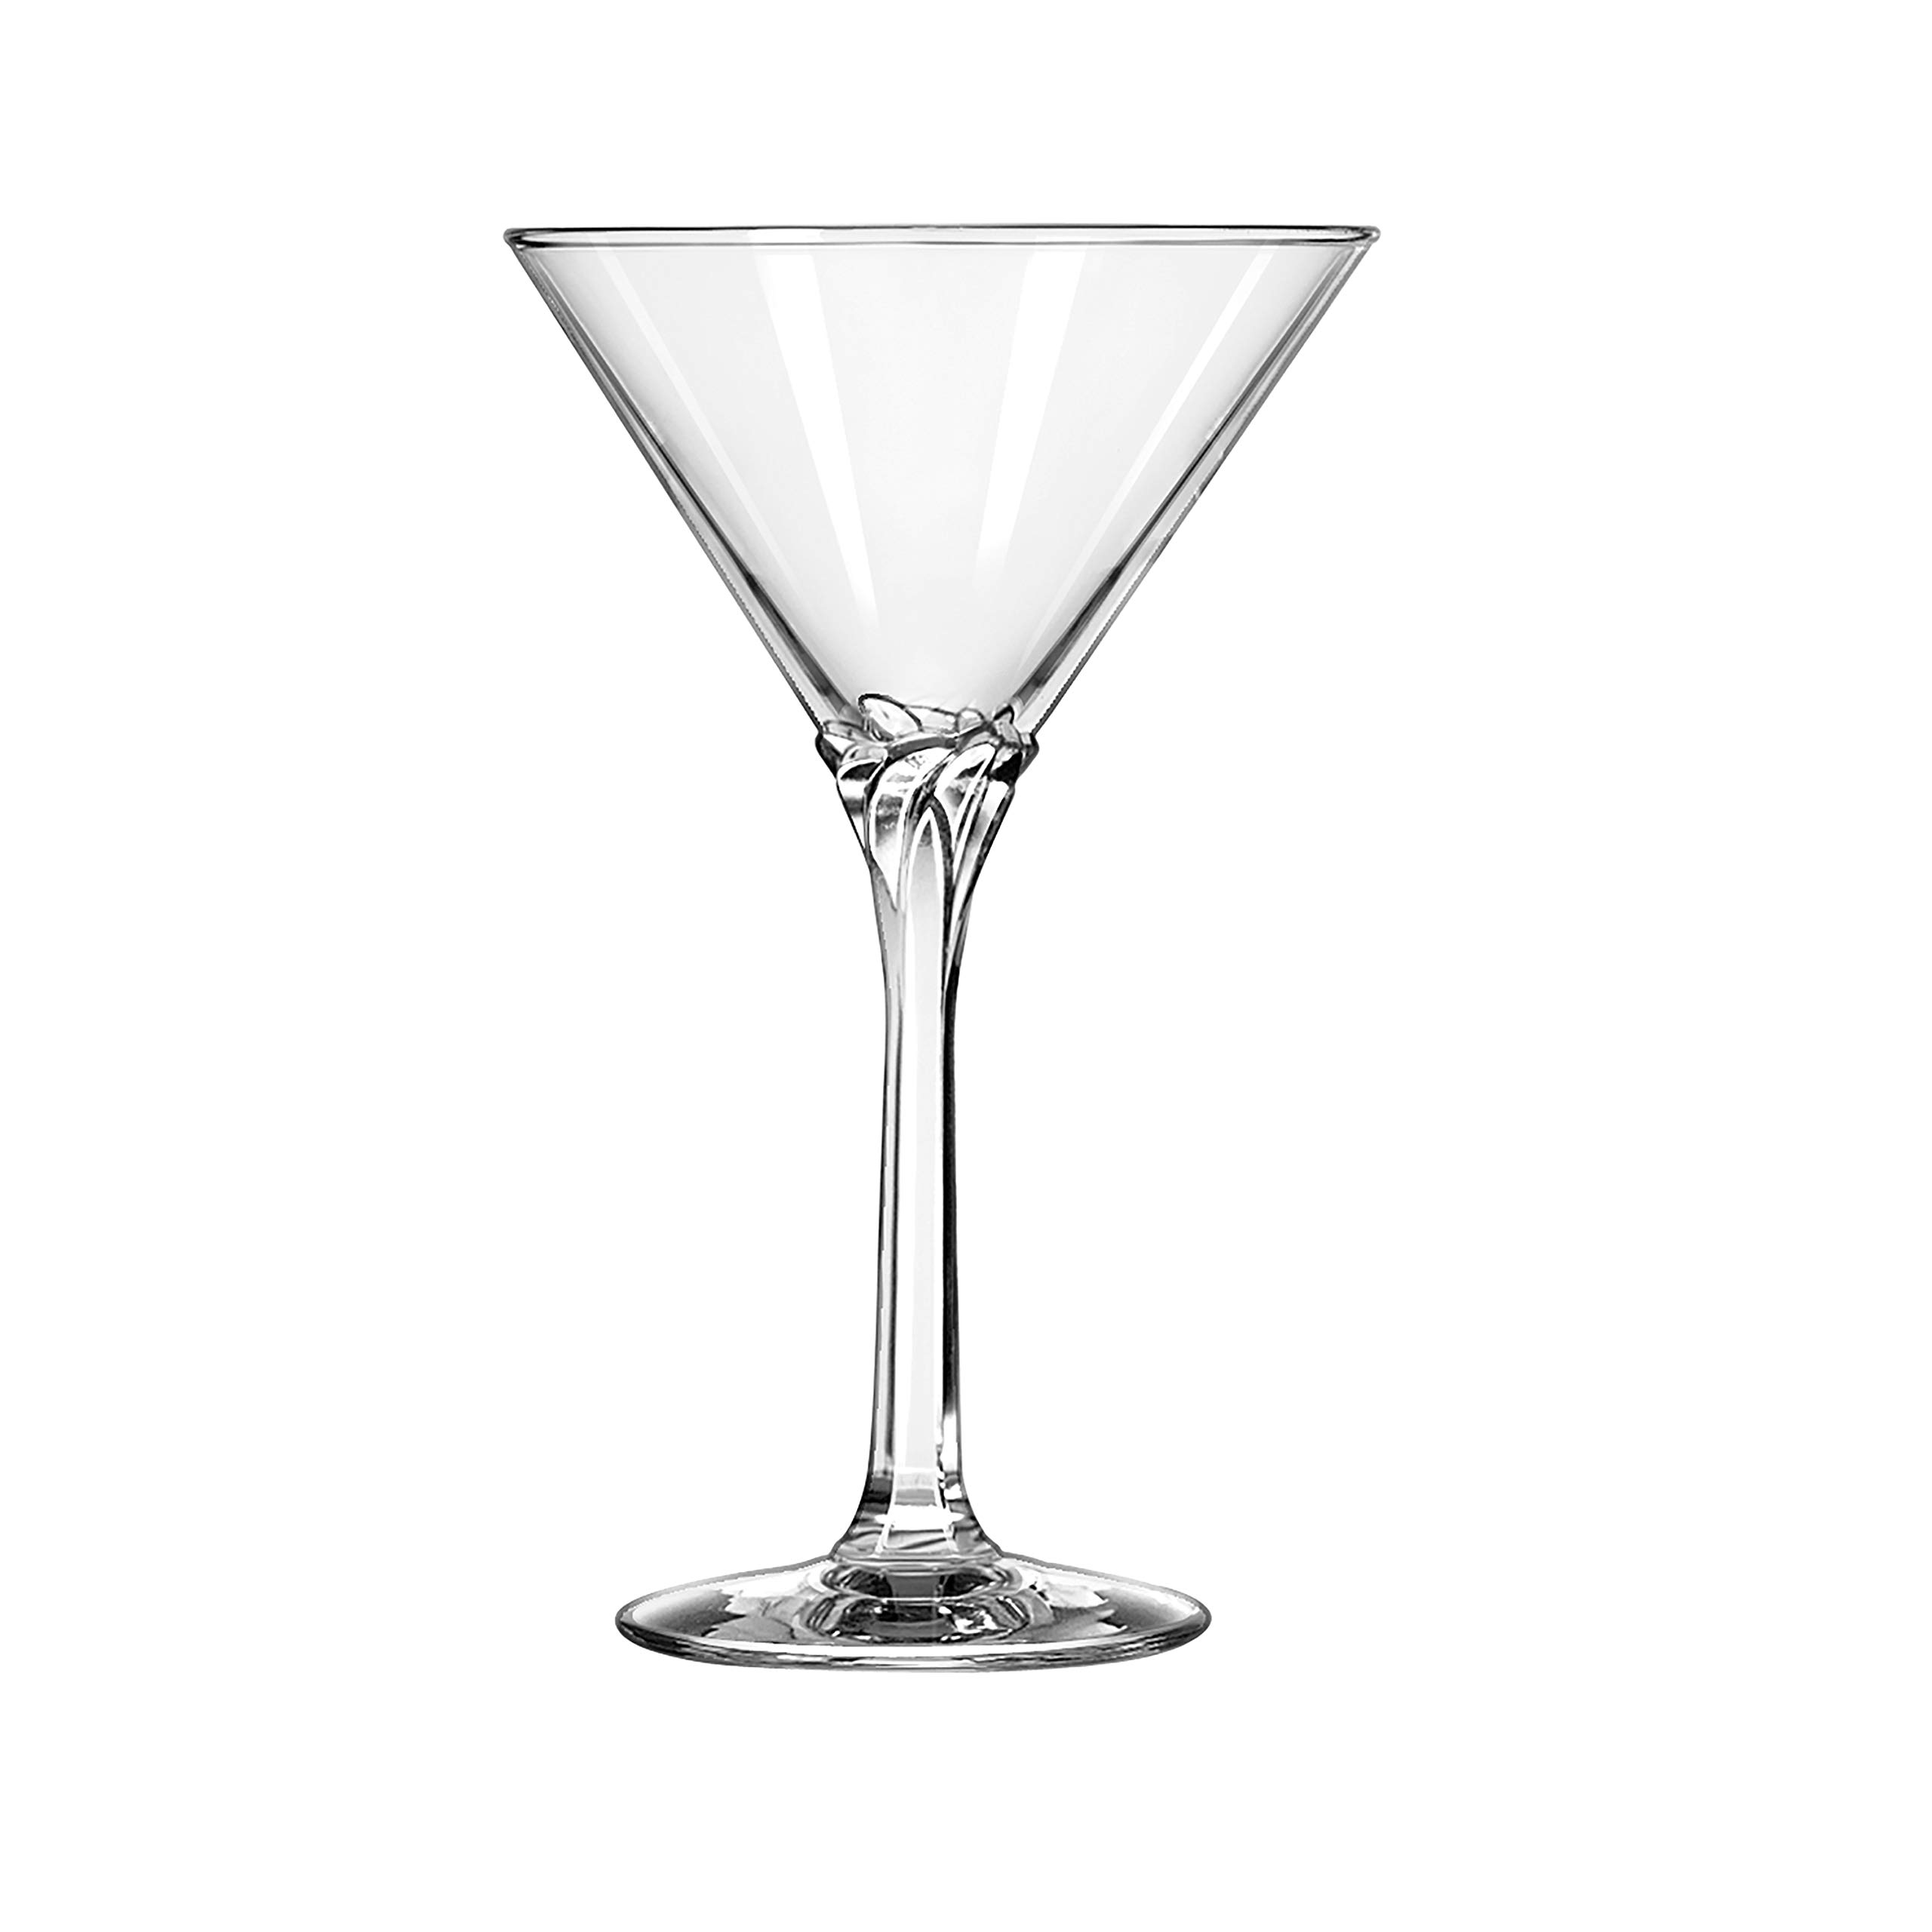 Libbey Domaine Clear Martini Glass, 8 Ounce - 12 per case